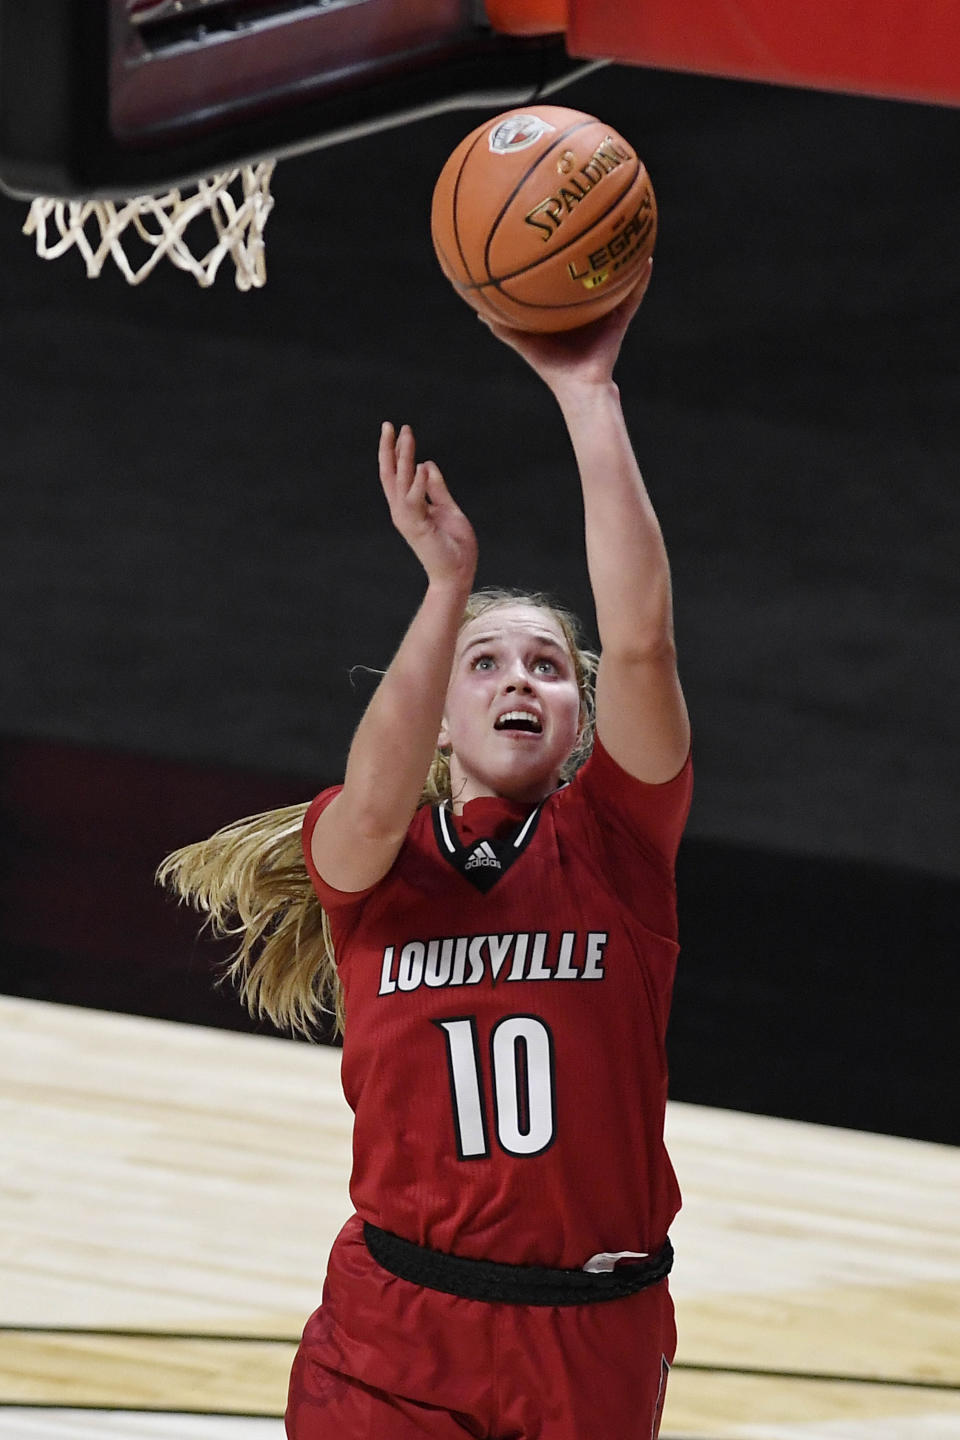 Louisville's Hailey Van Lith shoots during the first half of the team's NCAA college basketball game against Louisville, Friday, Dec. 4, 2020, in Uncasville, Conn. (AP Photo/Jessica Hill)